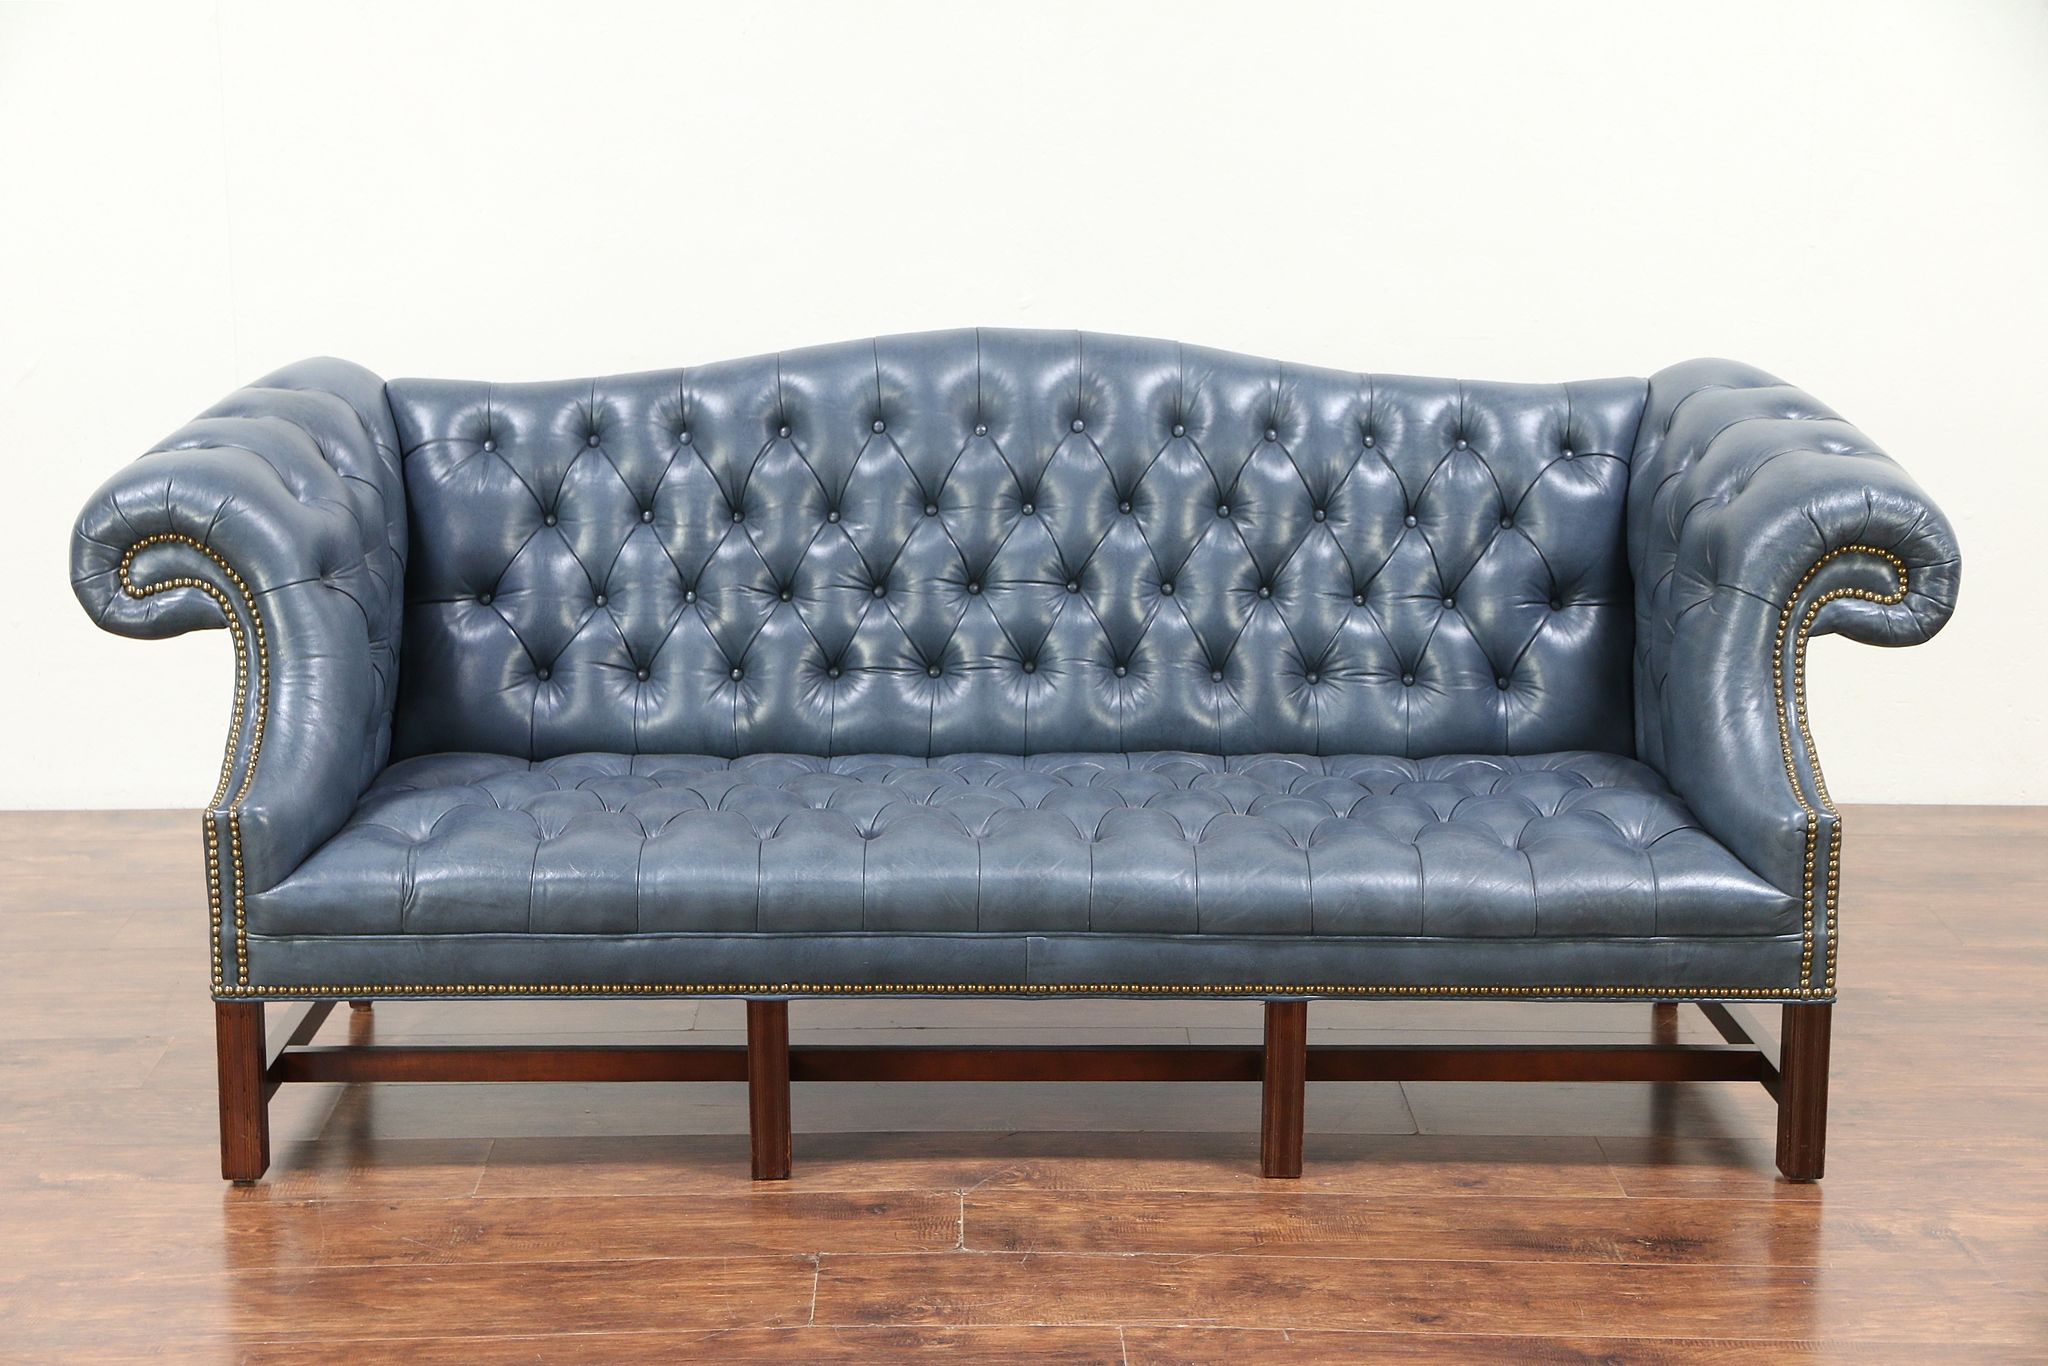 Chesterfield Tufted Leather Vintage Sofa Br Nailhead Trim 29423